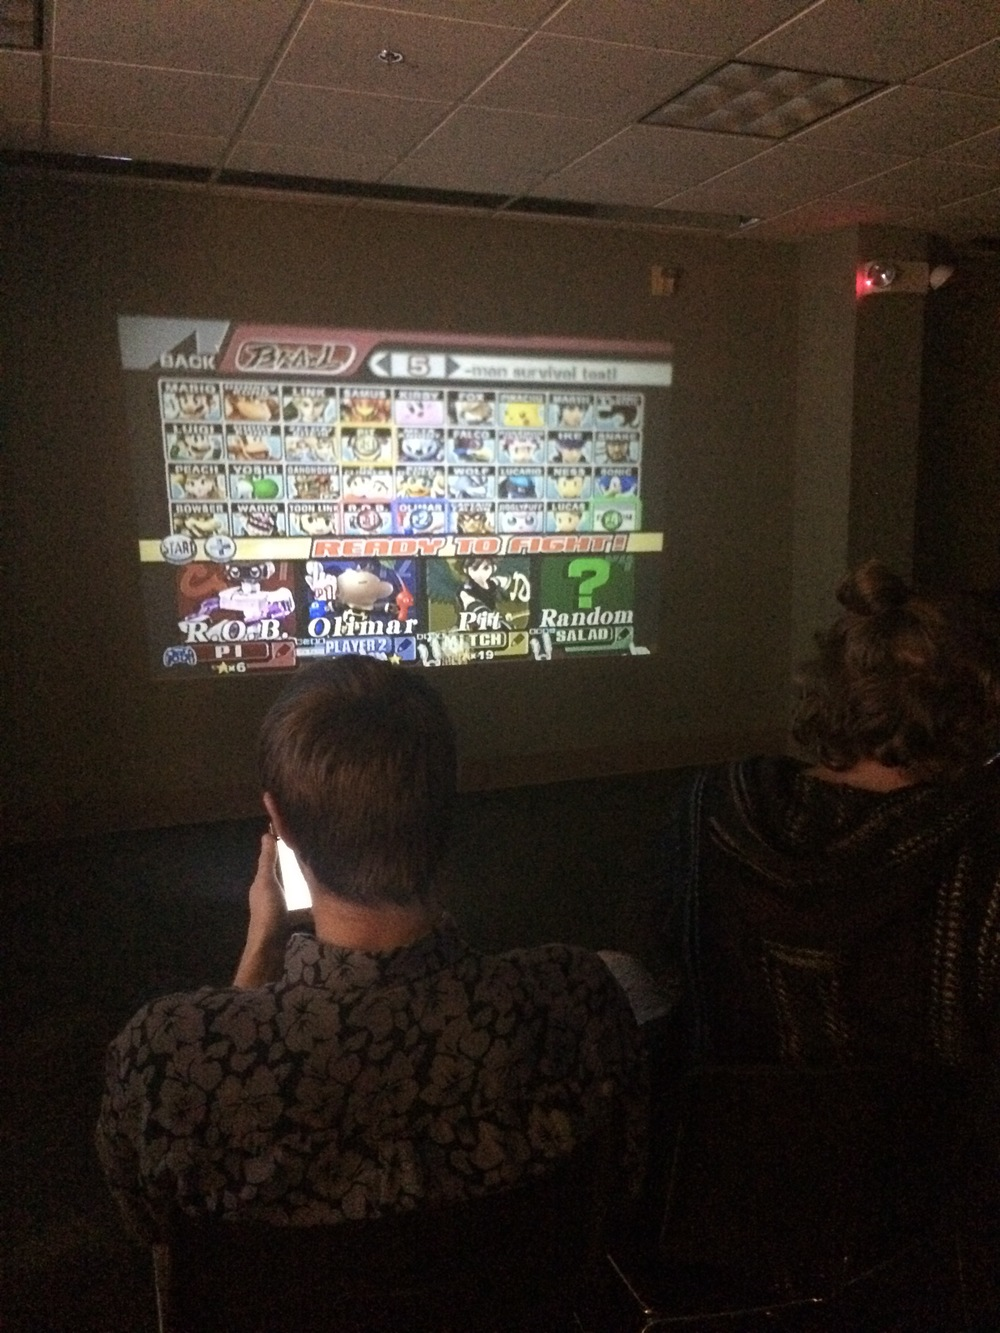 During Spring Fling, North Greenville University hosted a night of video games in the Joyful Sound Conference room.